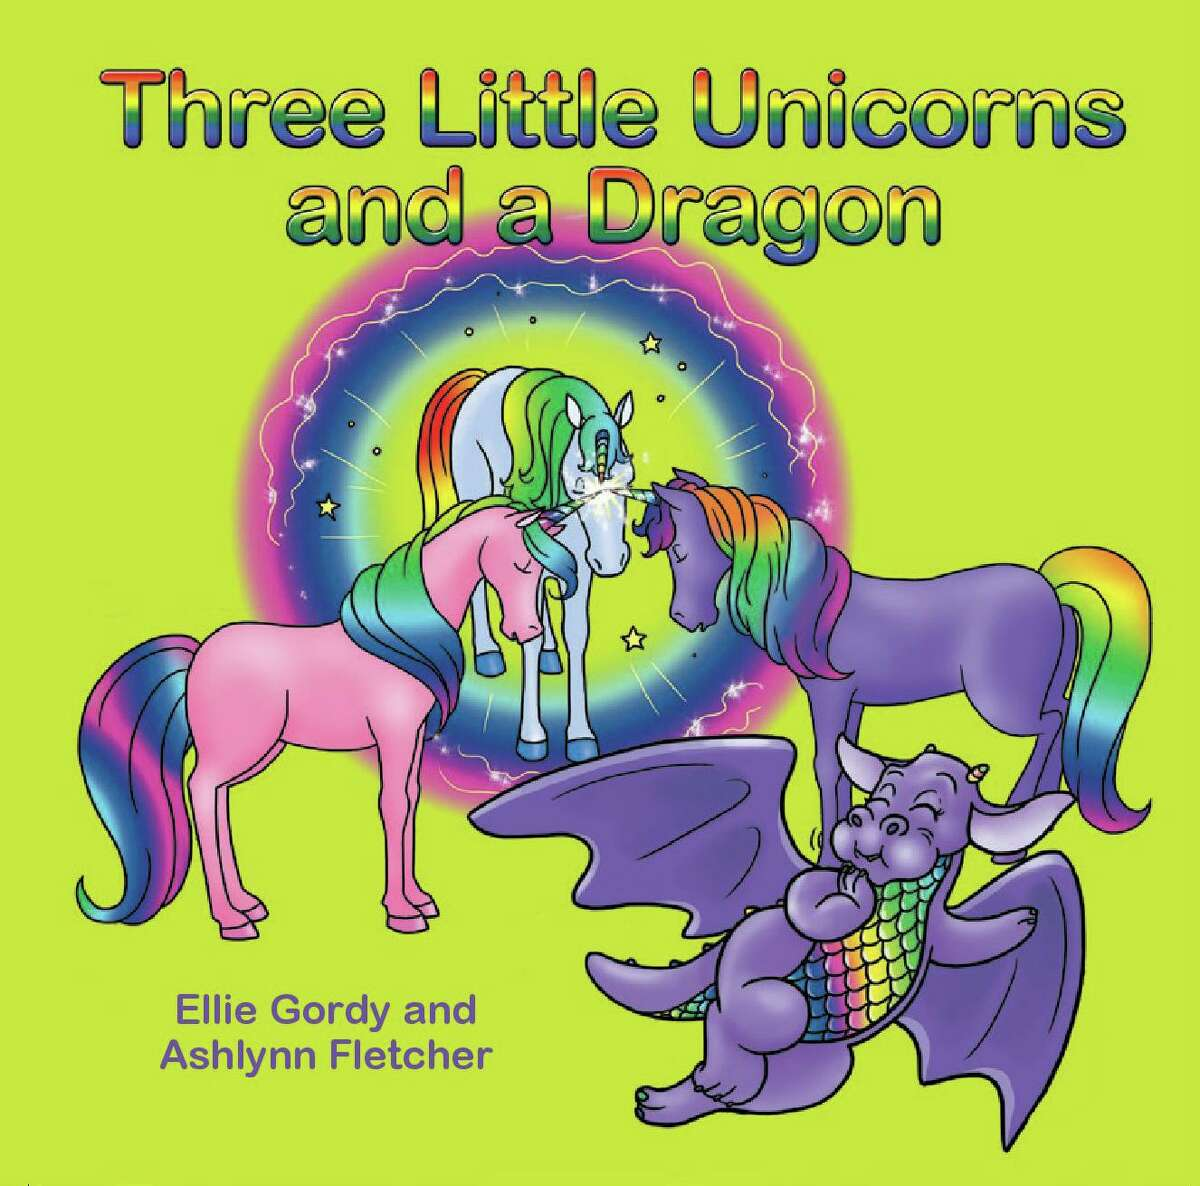 Lake Houston resident Ellie Gordy and her 7-year-old granddaughter Ahlynn Fletcher published a book together called